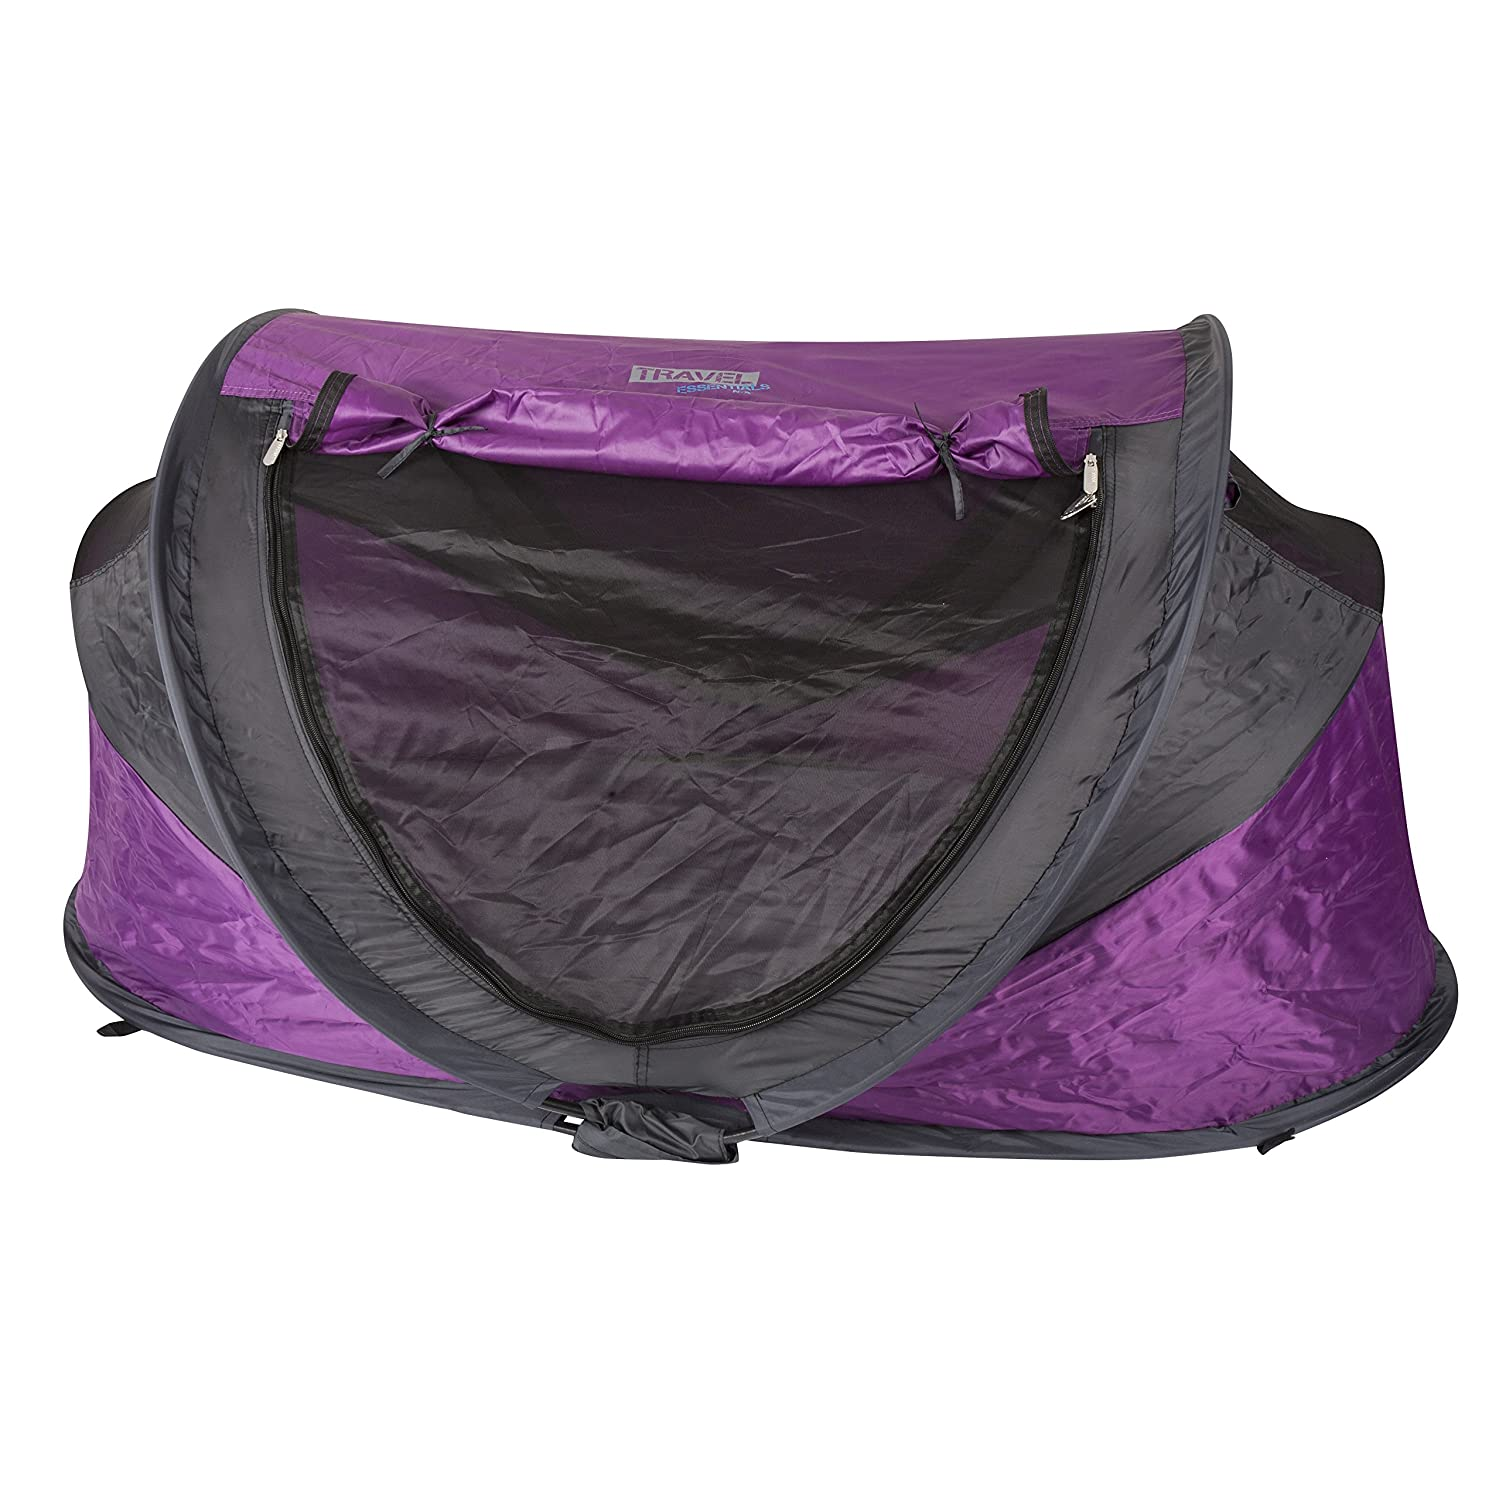 NSA Deluxe UV Travel Cot (Purple) TCDX-130-Purple